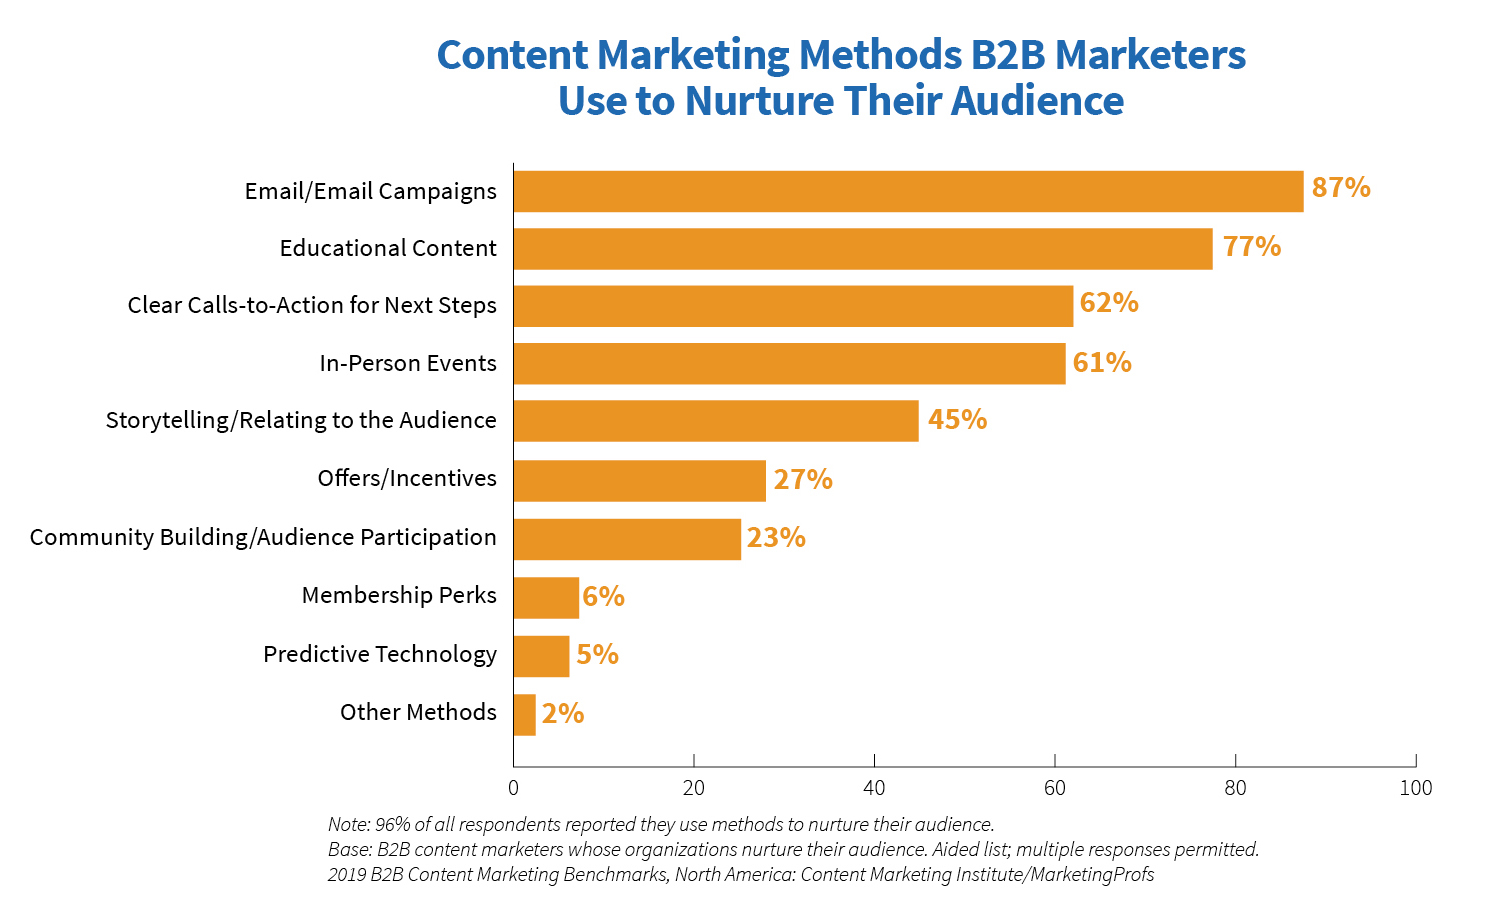 content marketing methods b2b marketers use to nurture their audience